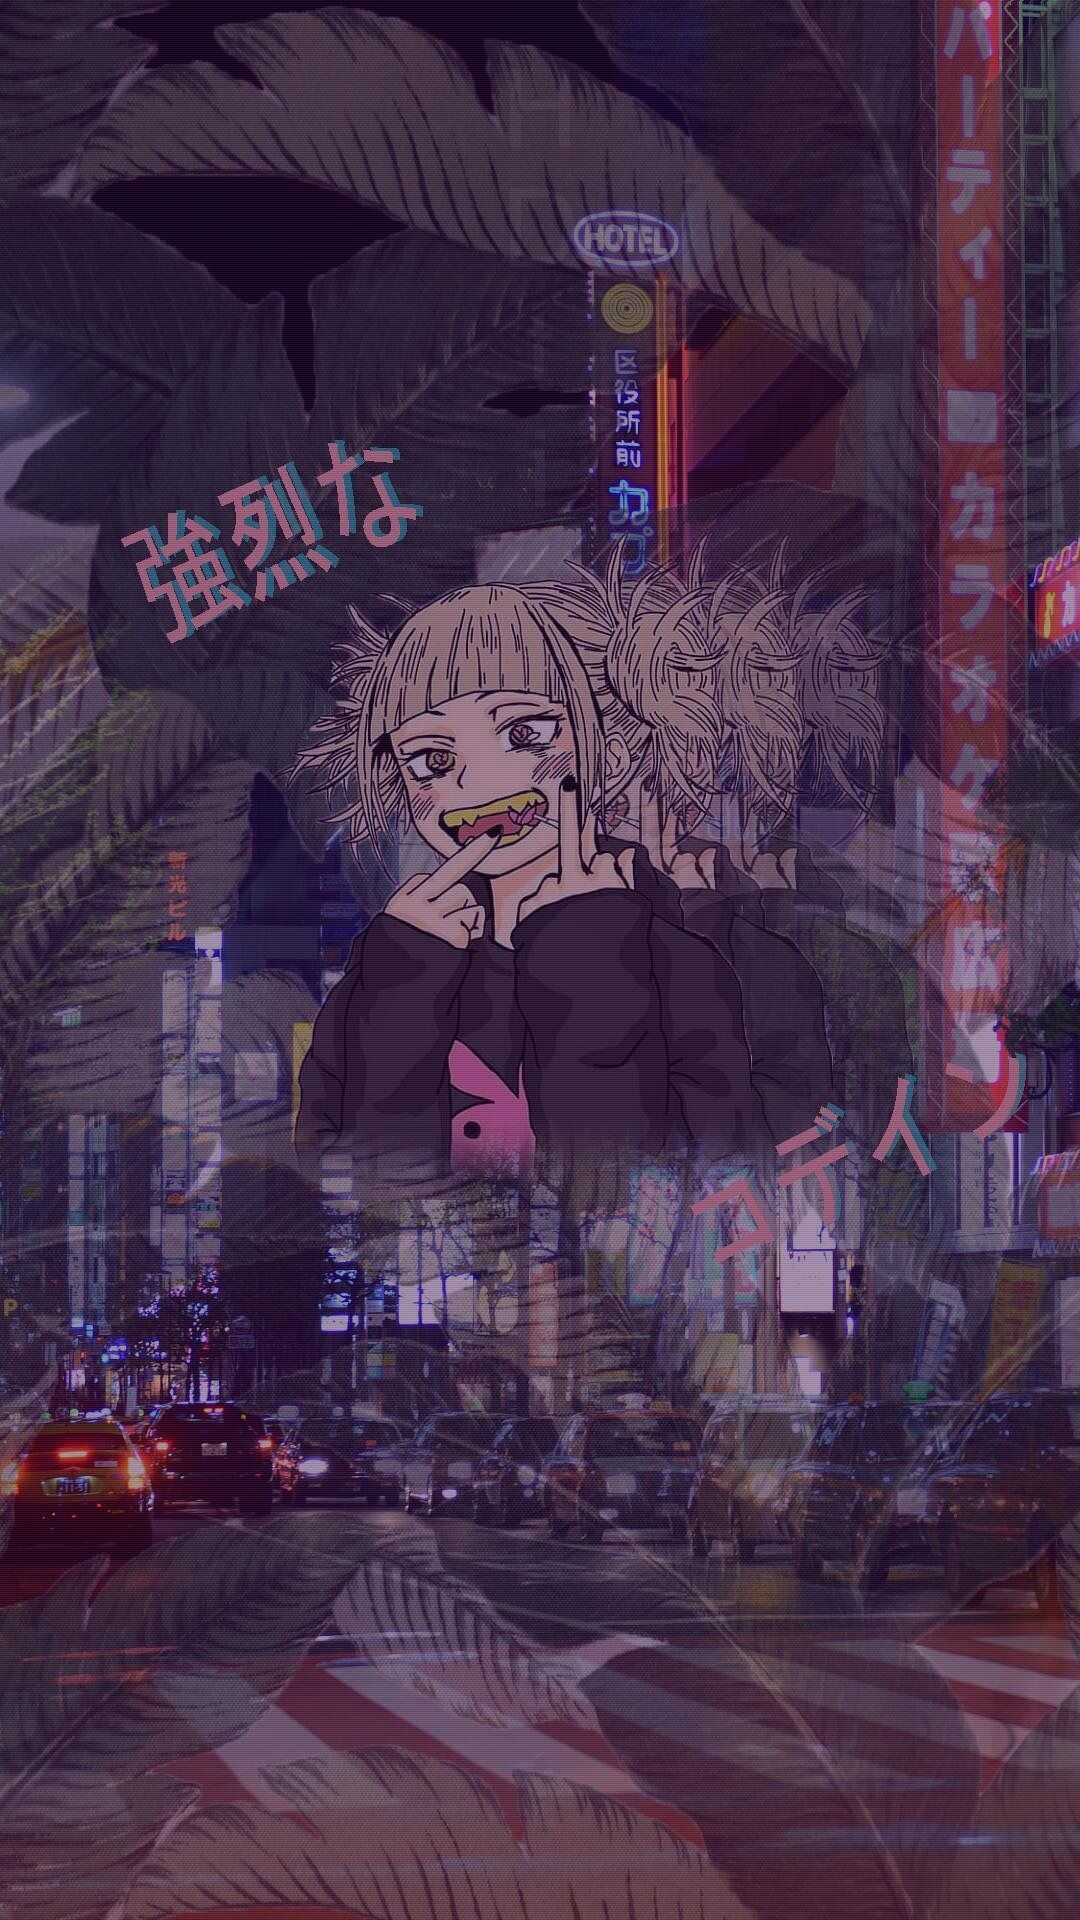 Anime Aesthetic Wallpapers Top Free Anime Aesthetic Backgrounds Wallpaperaccess